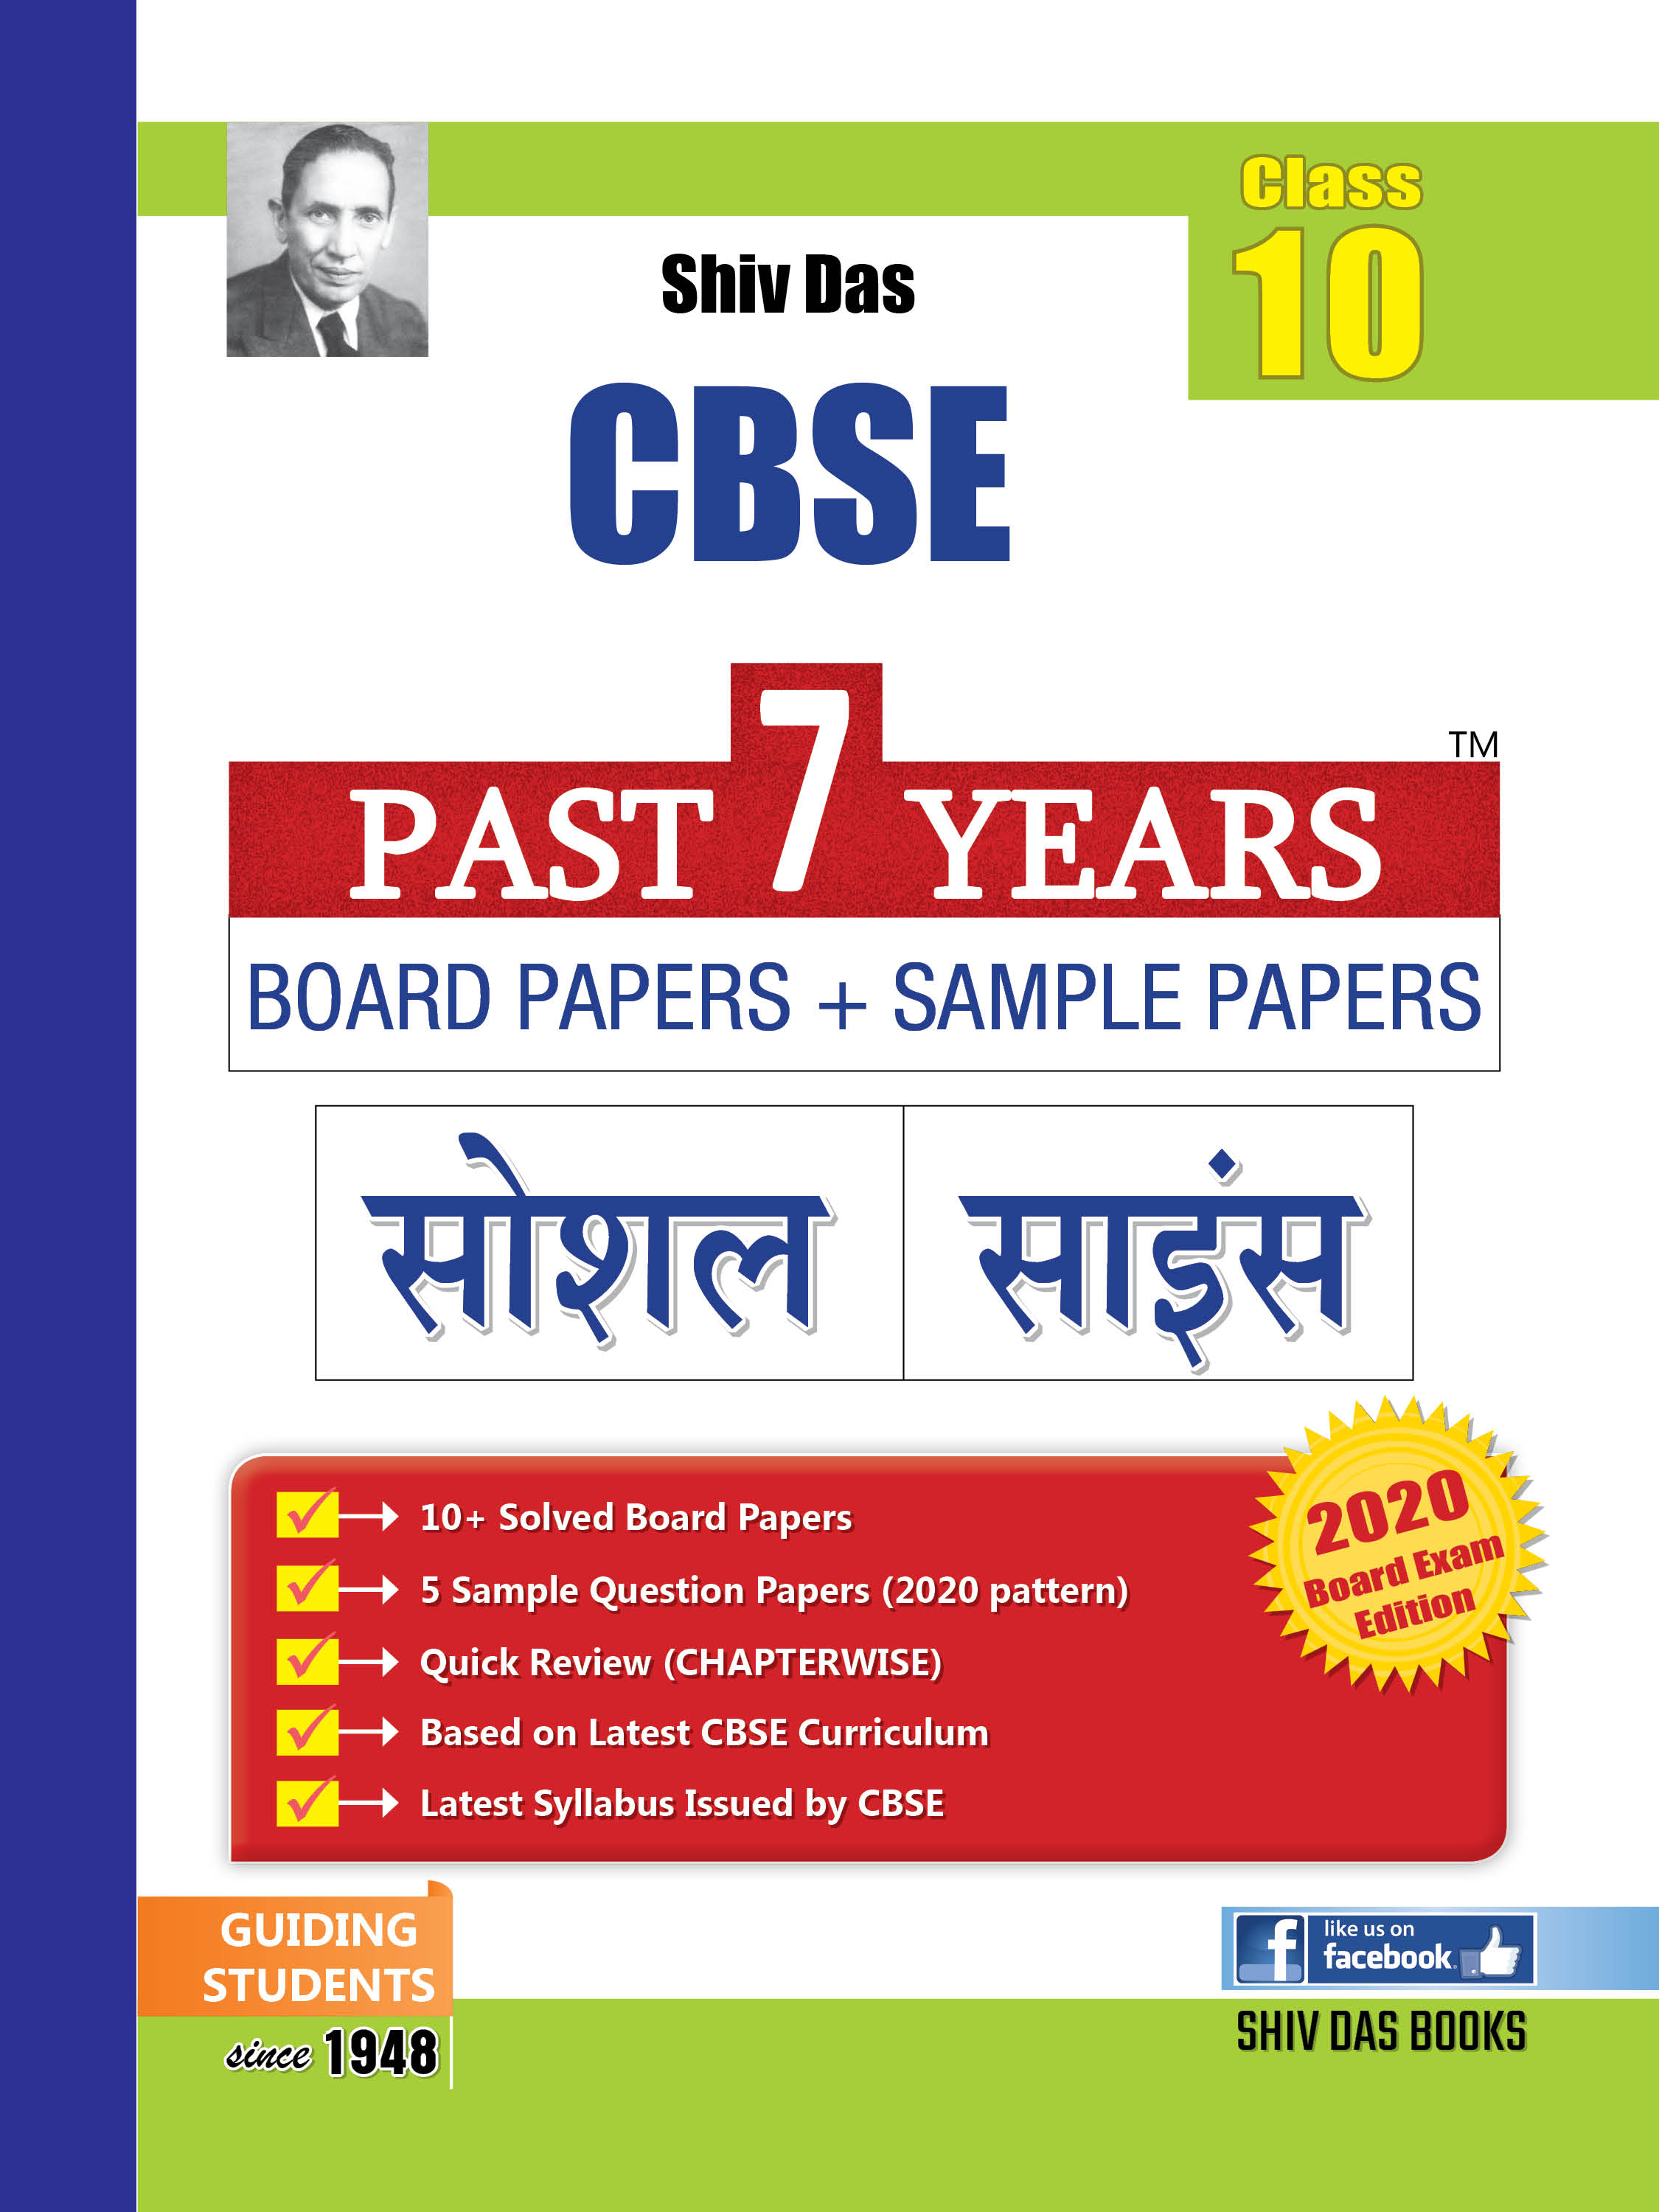 CBSE Past 7 Years Solved Board Papers+Sample Papers for Class 10 Samajik Vigyan (2020 Board Exam Edition)